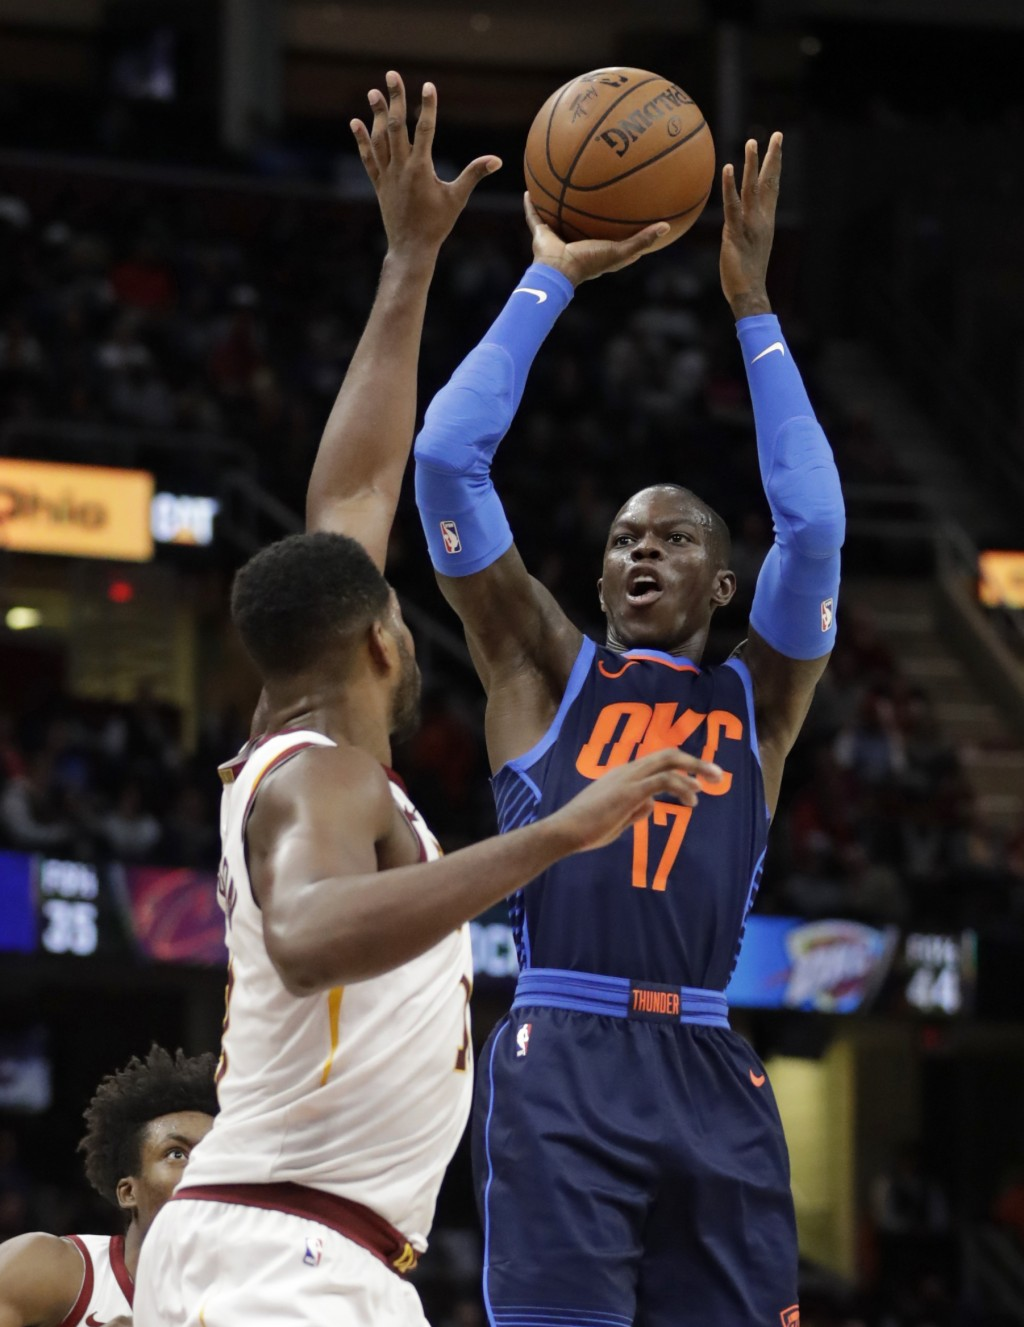 Oklahoma City Thunder's Dennis Schroeder, right, shoots over Cleveland Cavaliers' Tristan Thompson during the second half of an NBA basketball game We